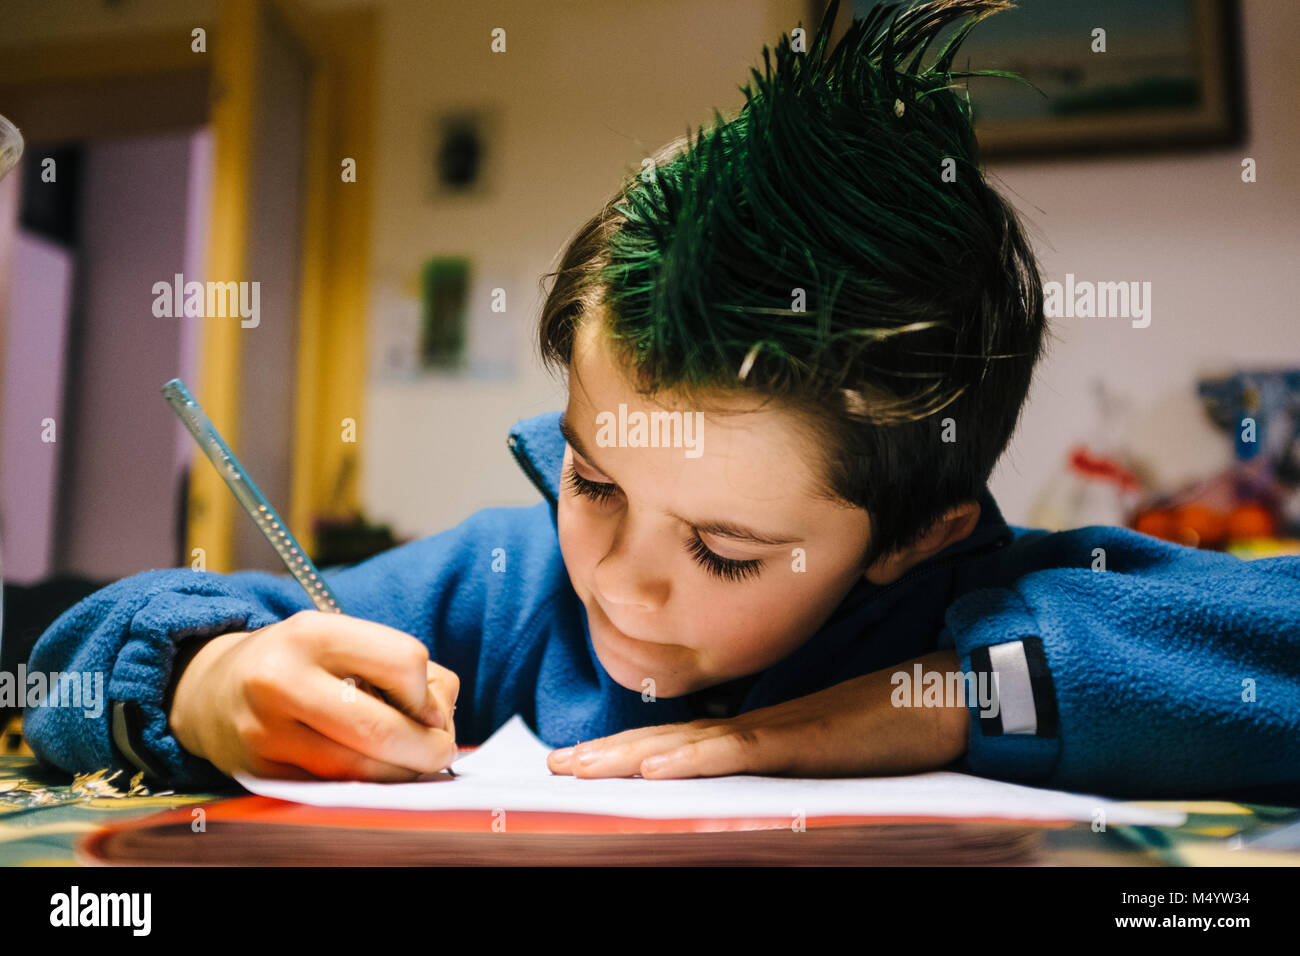 Portrait Of 9 Year Old Boy At Home With Green Colored Hair Crest